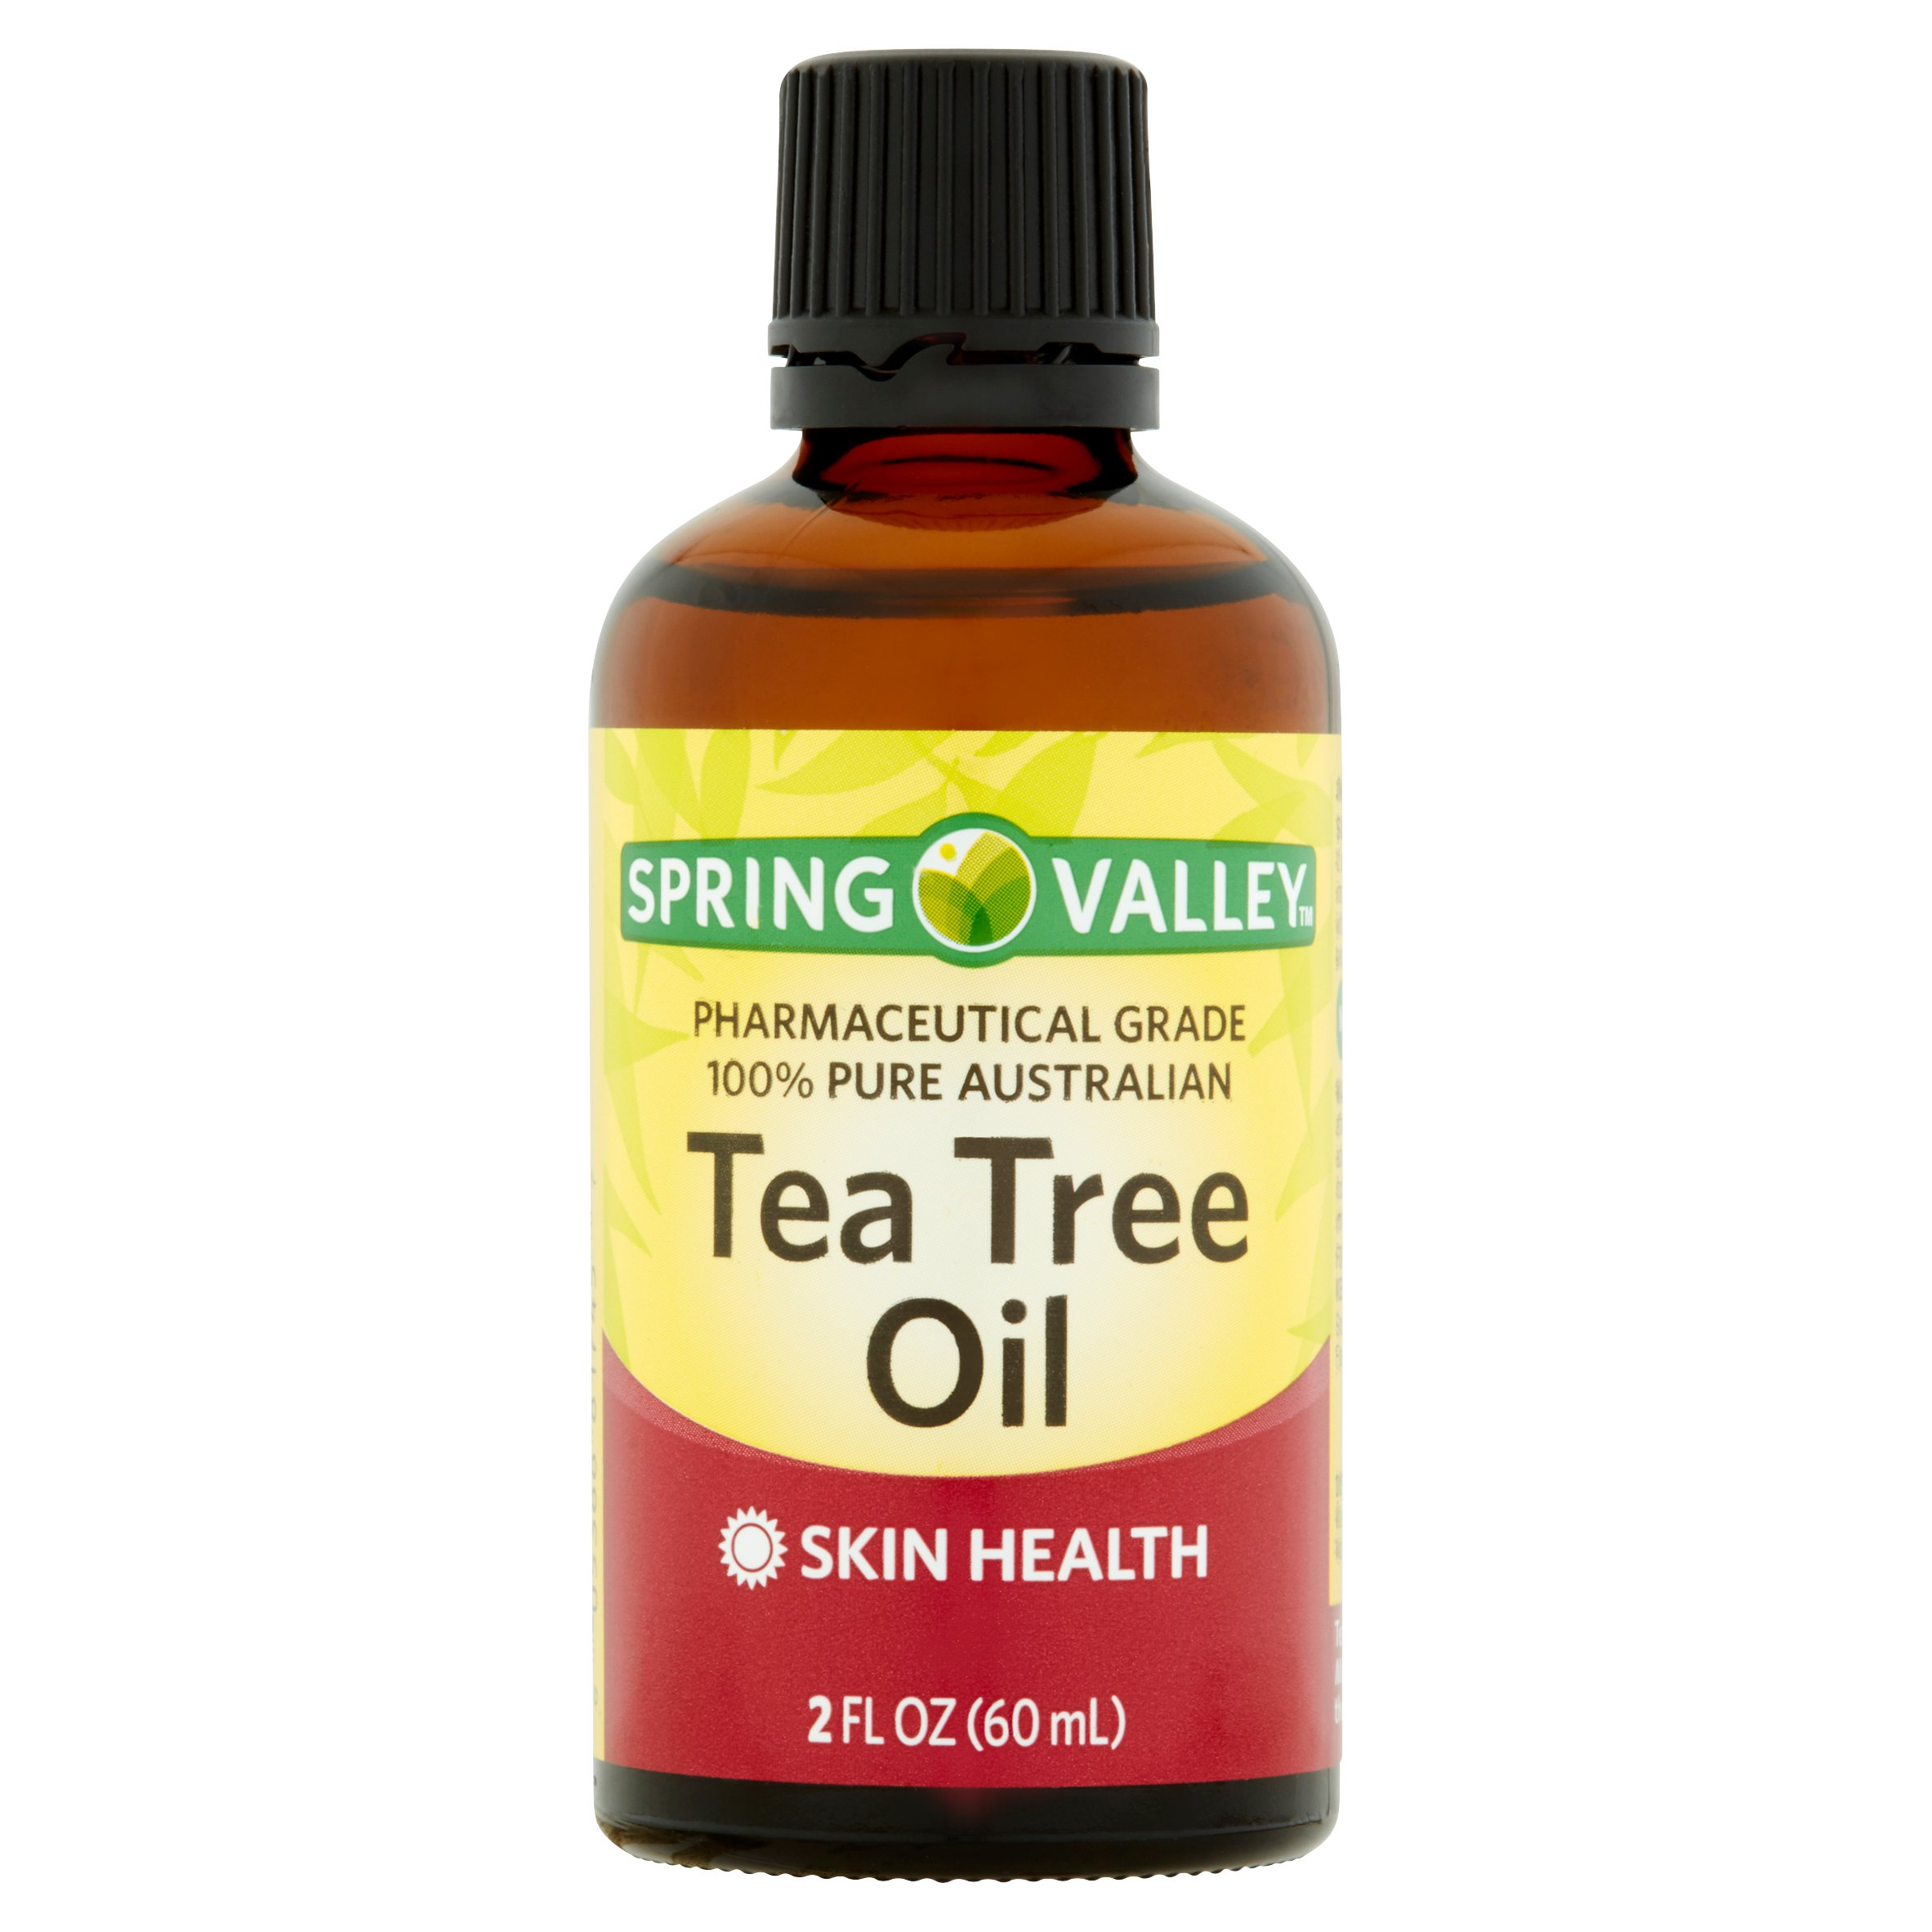 Spring Valley Tea Tree Oil Skin Health, 2 Oz